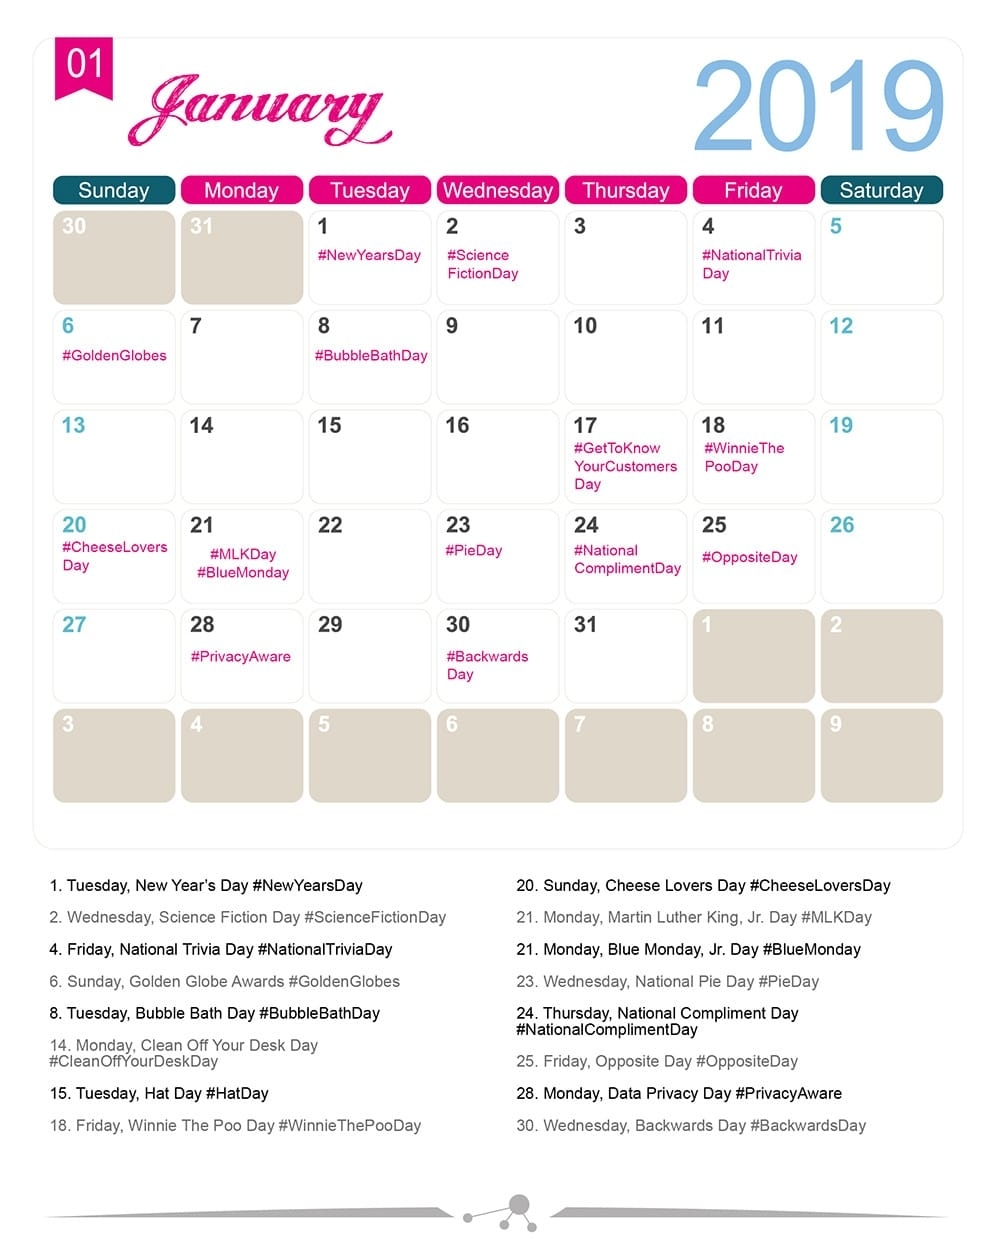 The 2019 Social Media Holiday Calendar - Make A Website Hub with regard to 2019-2020 National Days Calendar